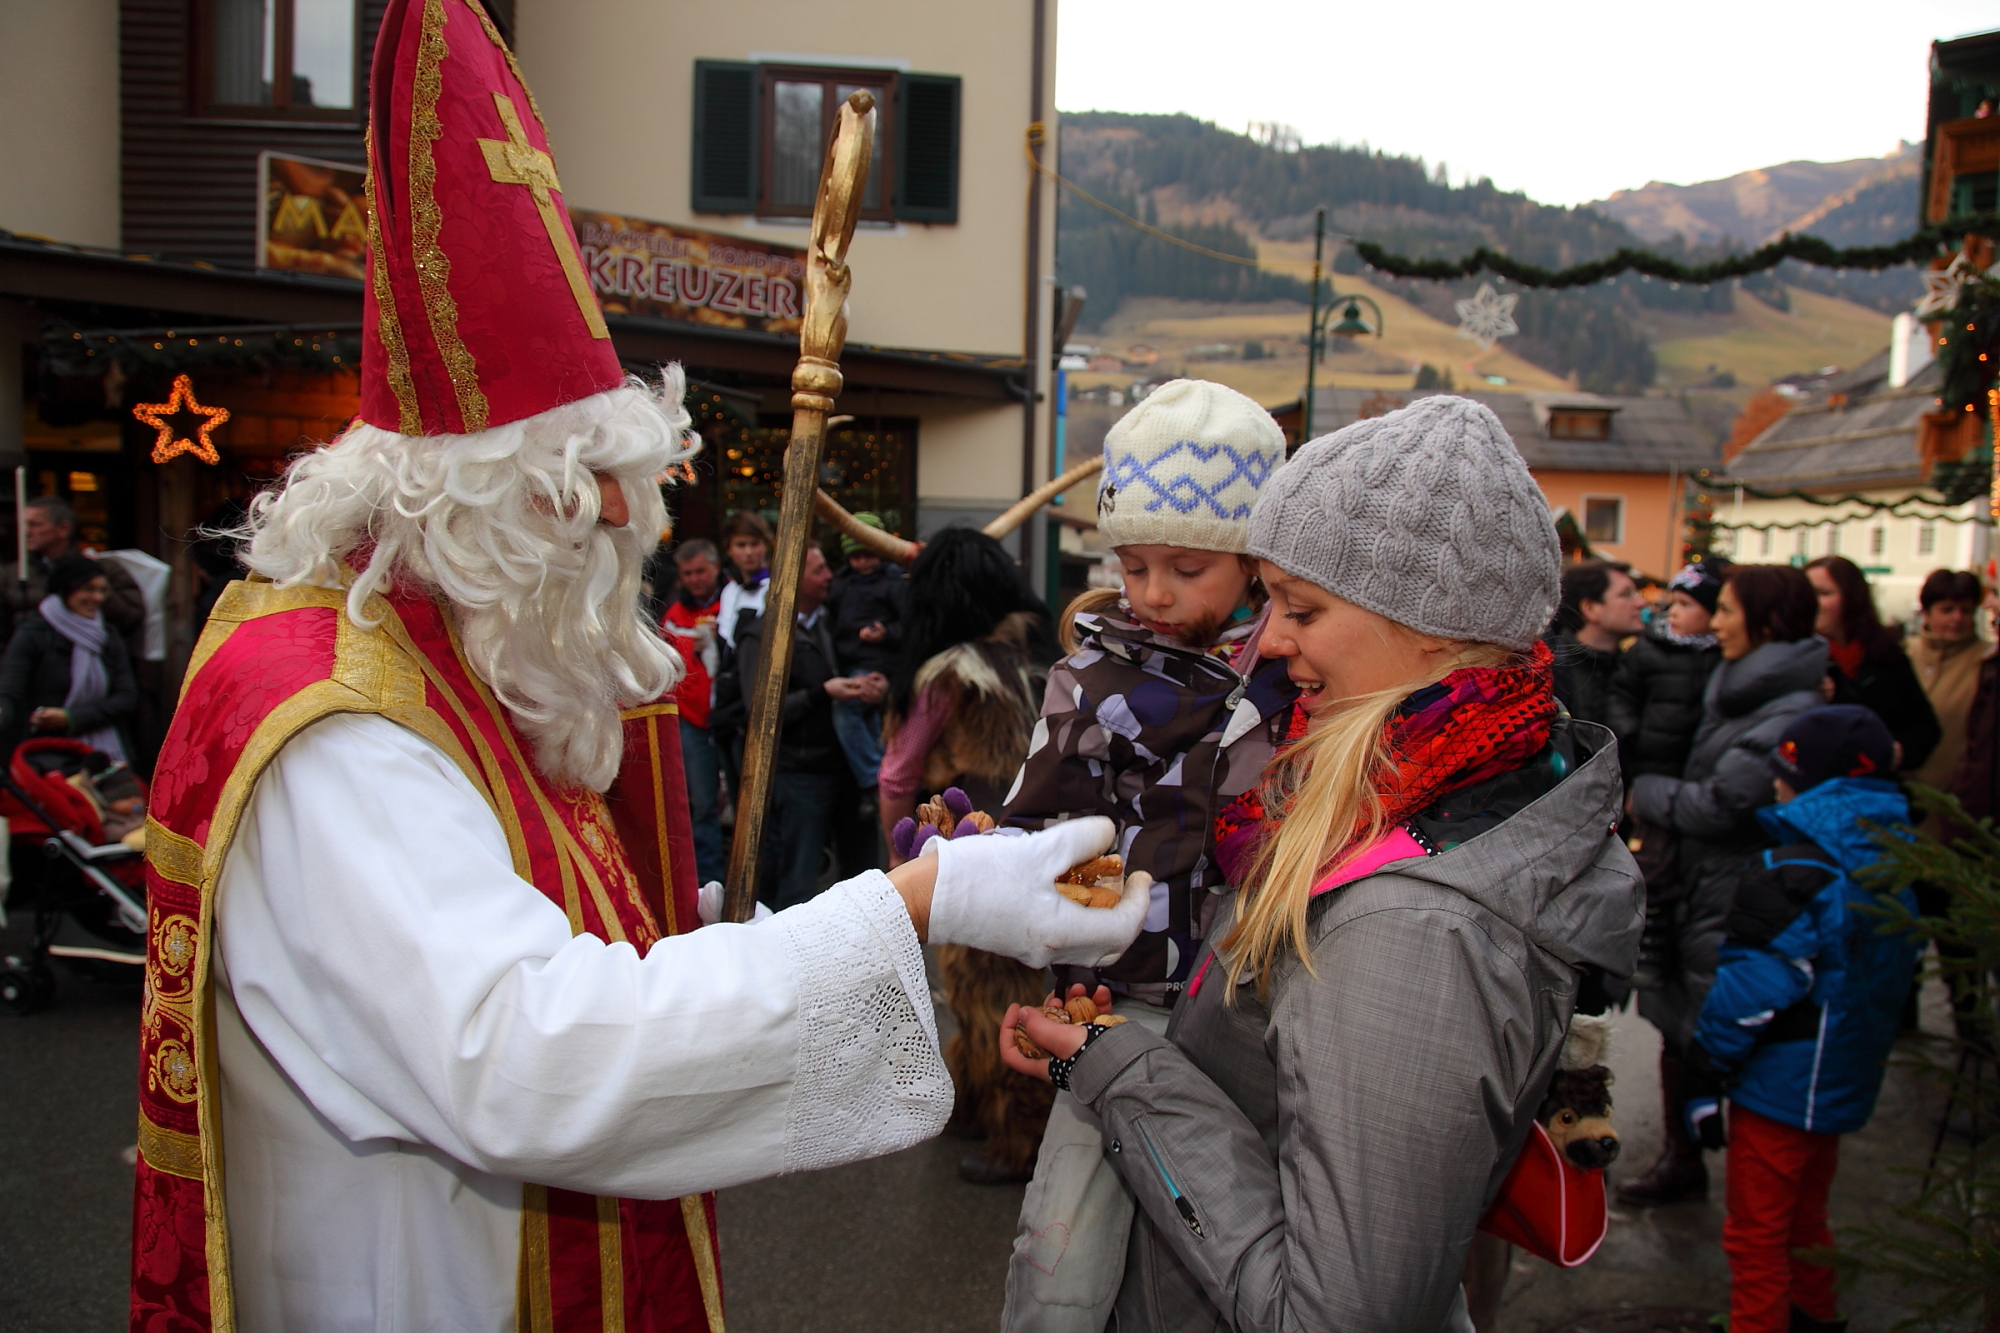 St. Nick and Krampus in Grossarl